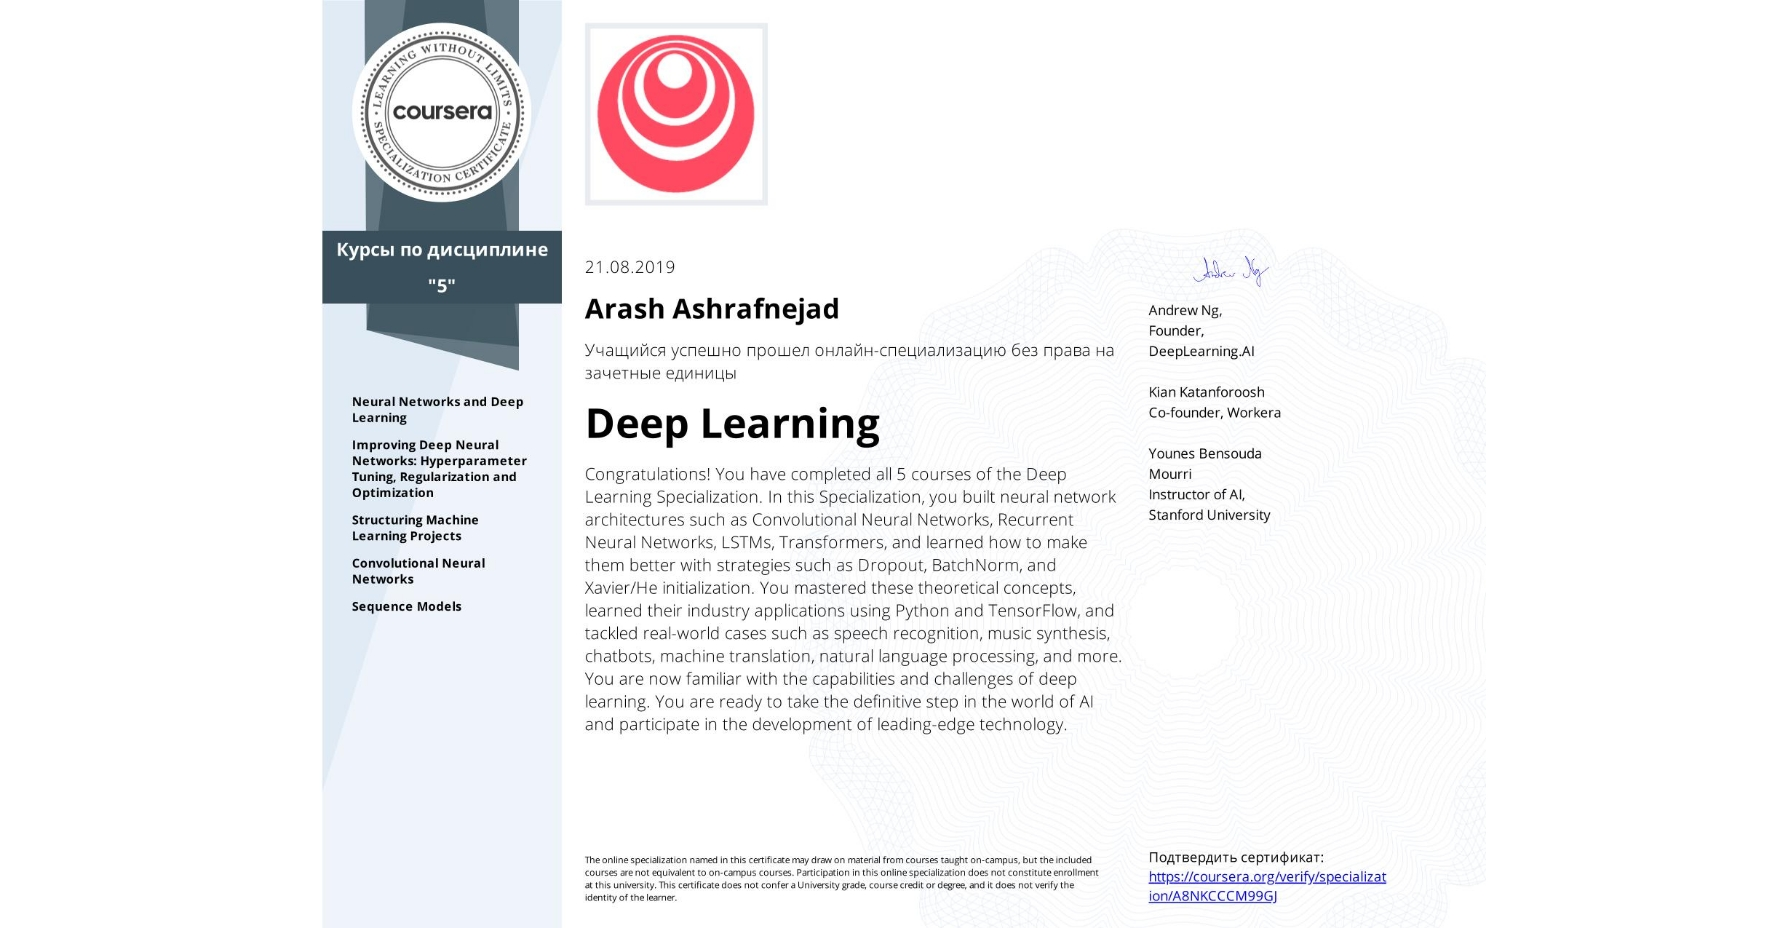 View certificate for Arash Ashrafnejad, Deep Learning, offered through Coursera. Congratulations! You have completed all 5 courses of the Deep Learning Specialization.  In this Specialization, you built neural network architectures such as Convolutional Neural Networks, Recurrent Neural Networks, LSTMs, Transformers, and learned how to make them better with strategies such as Dropout, BatchNorm, and Xavier/He initialization. You mastered these theoretical concepts, learned their industry applications using Python and TensorFlow, and tackled real-world cases such as speech recognition, music synthesis, chatbots, machine translation, natural language processing, and more.  You are now familiar with the capabilities and challenges of deep learning. You are ready to take the definitive step in the world of AI and participate in the development of leading-edge technology.